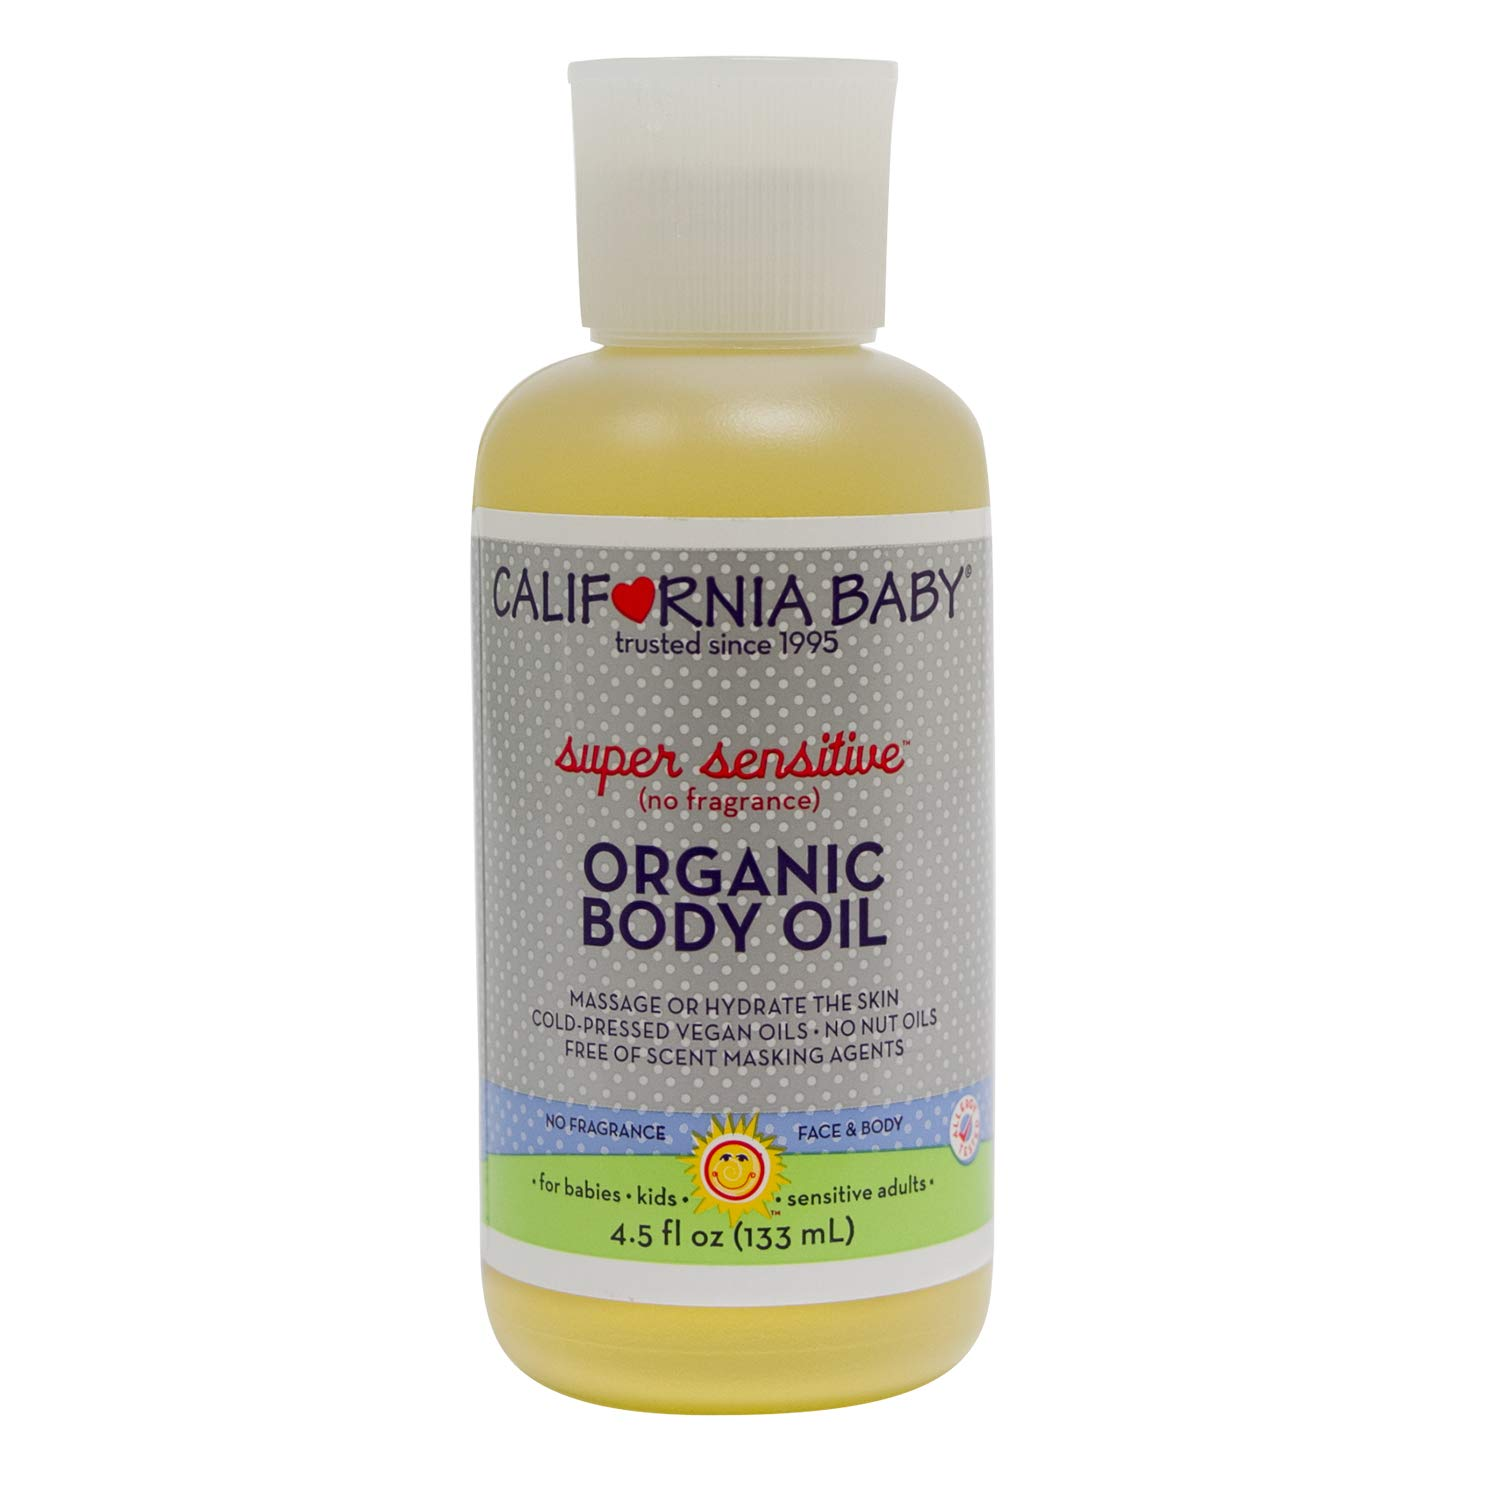 California Baby Super Sensitive Massage Oil | 100% Plant Based (excludes water) | Cold Pressed Vegan Oils for Arms, Legs, Back, and Body, Gentle on Sensitive Skin | Baby or Adult Use | (4.5 ounces) by California Baby